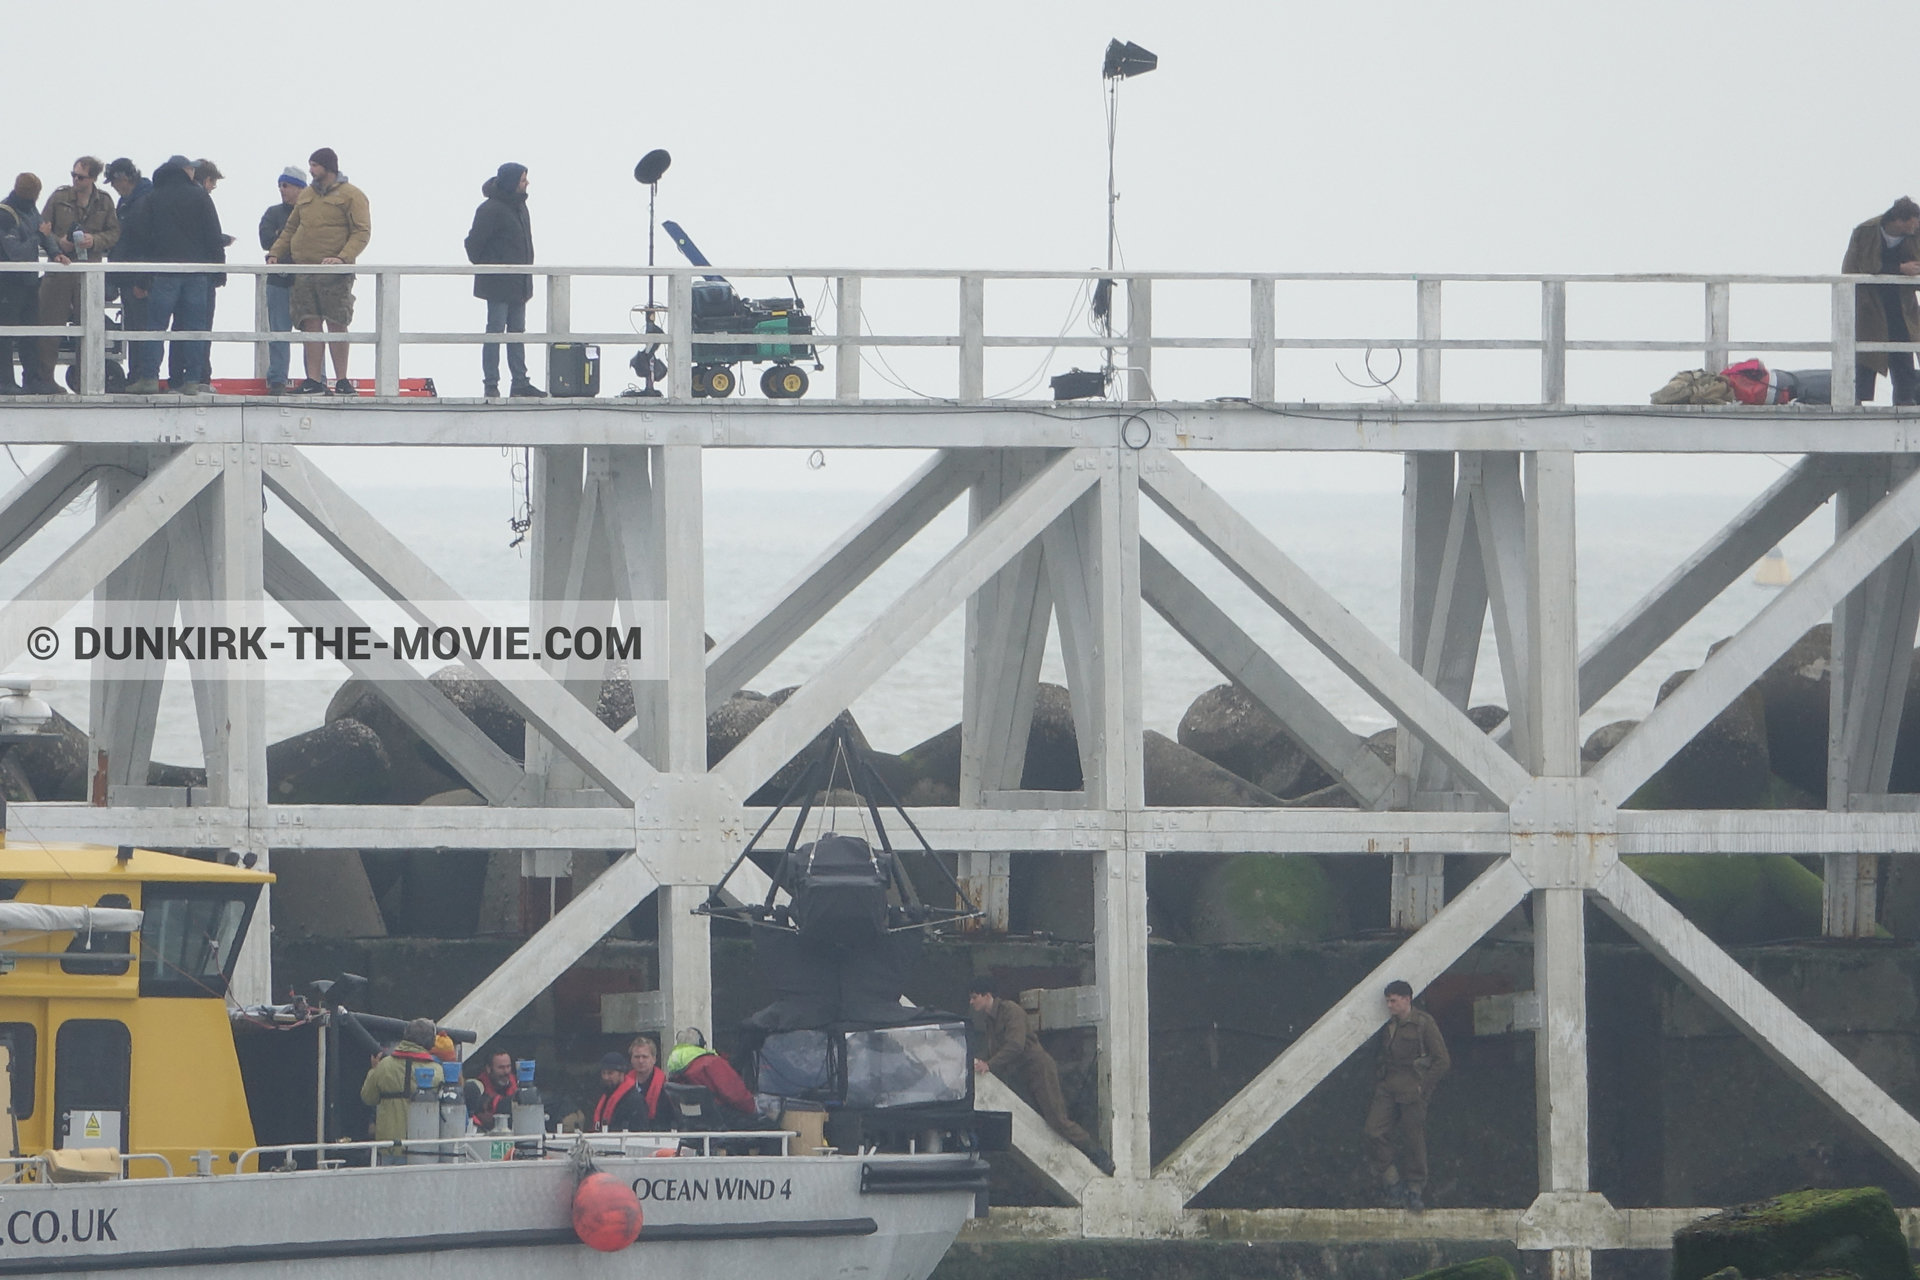 Photo on canvas number 85, of the filming of the film Dunkirk